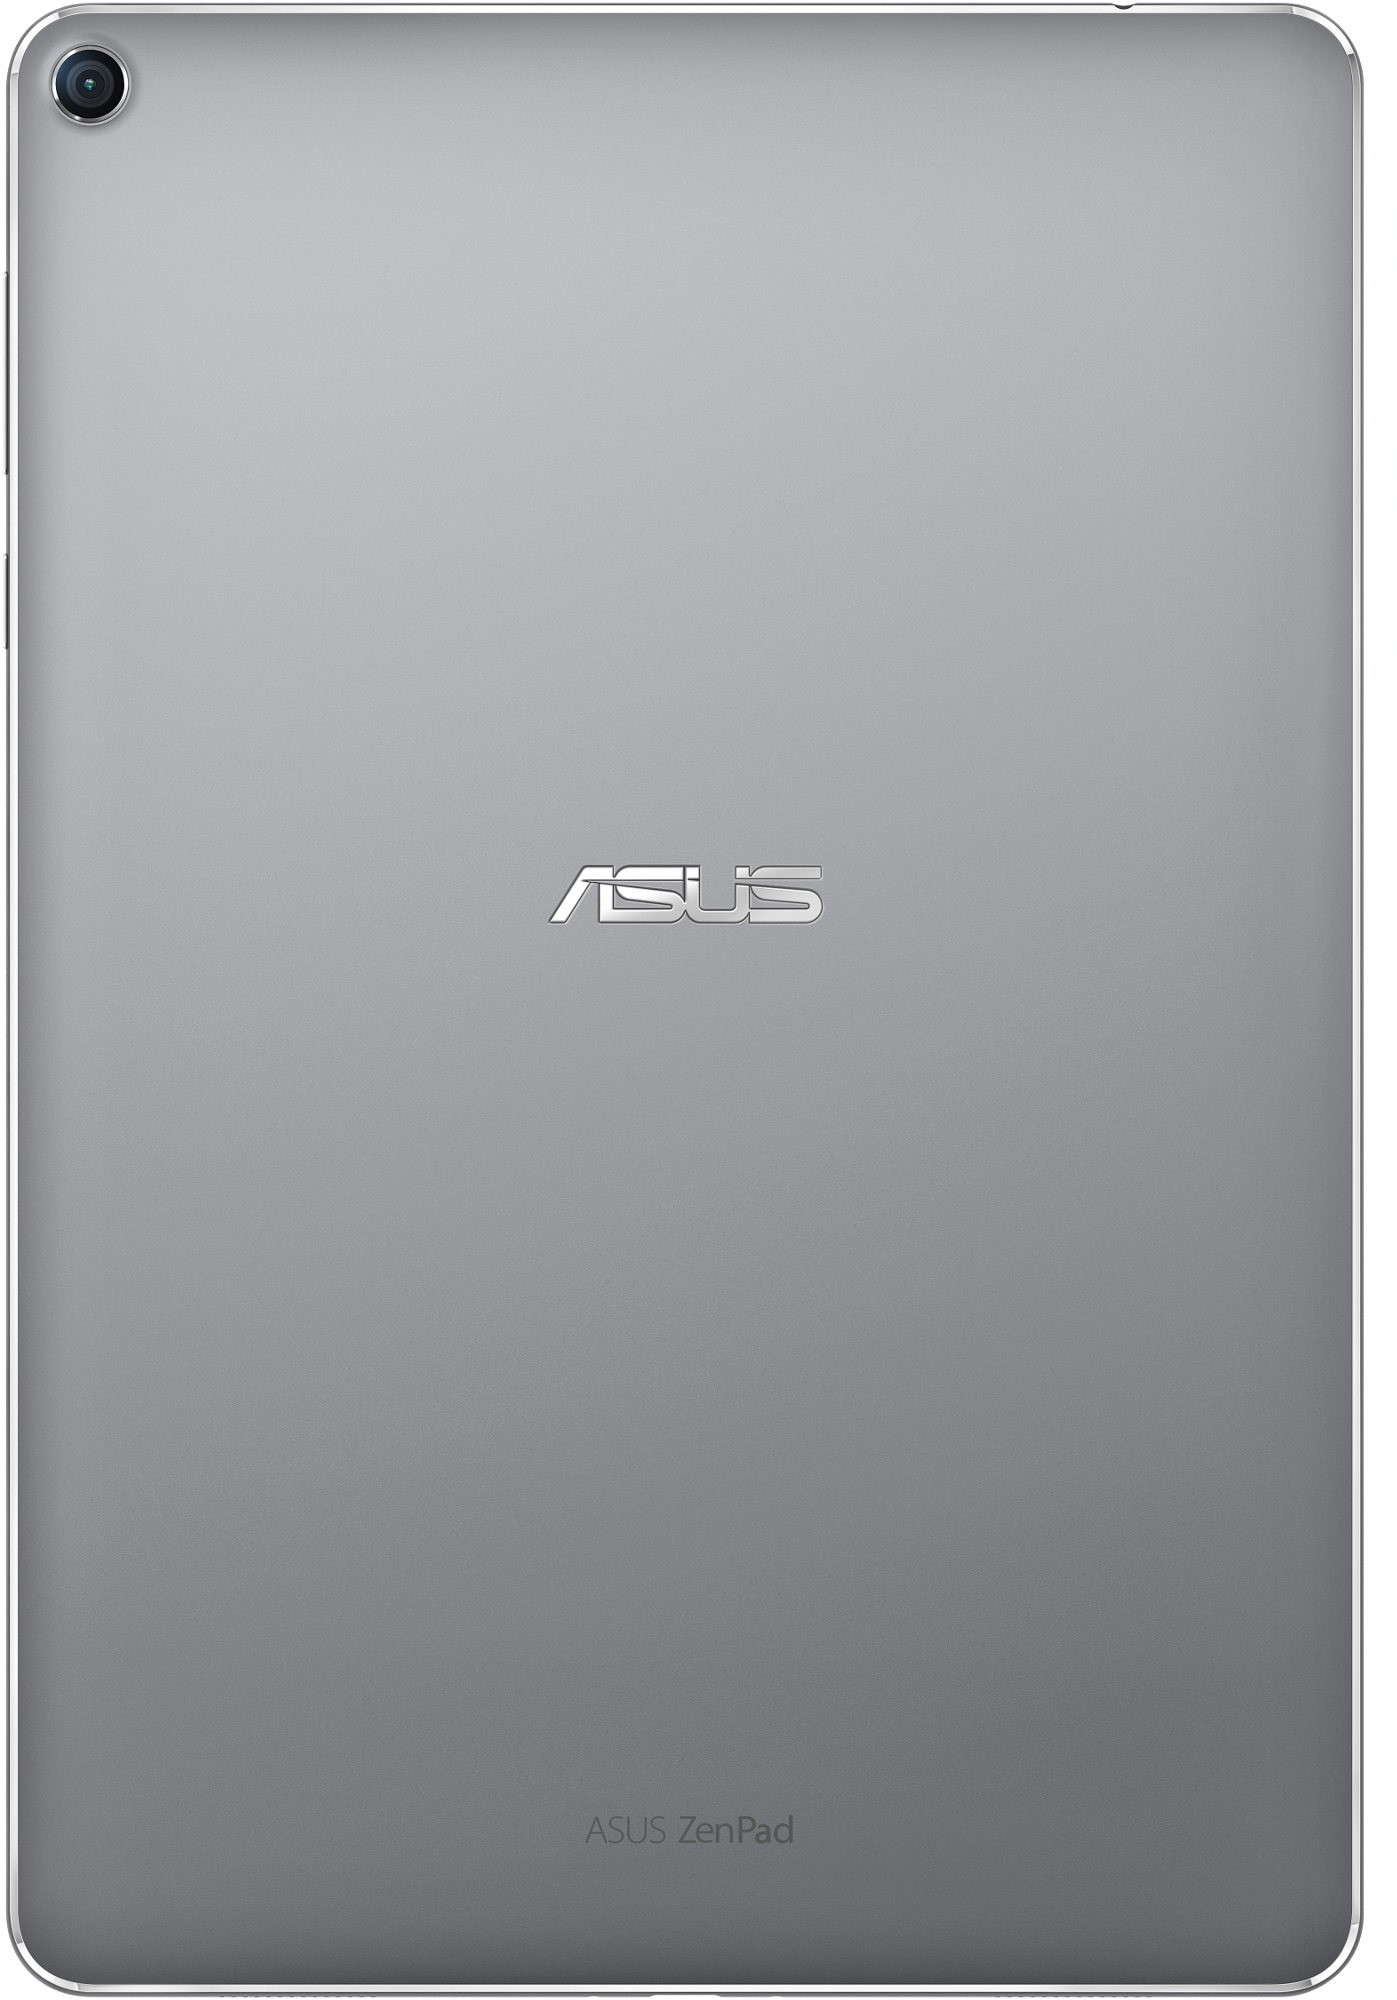 ASUS - Z 500 M-1 H 007 A